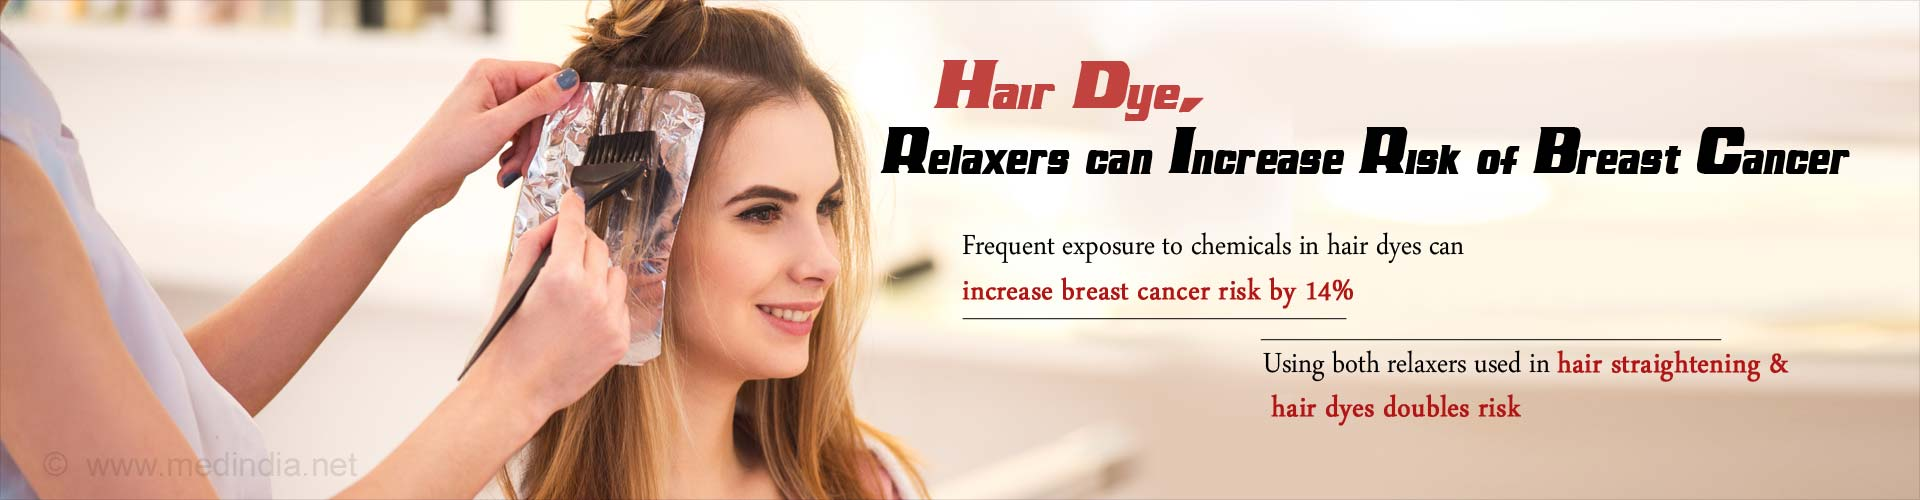 Hair dye, relaxers can increase risk of breast cancer